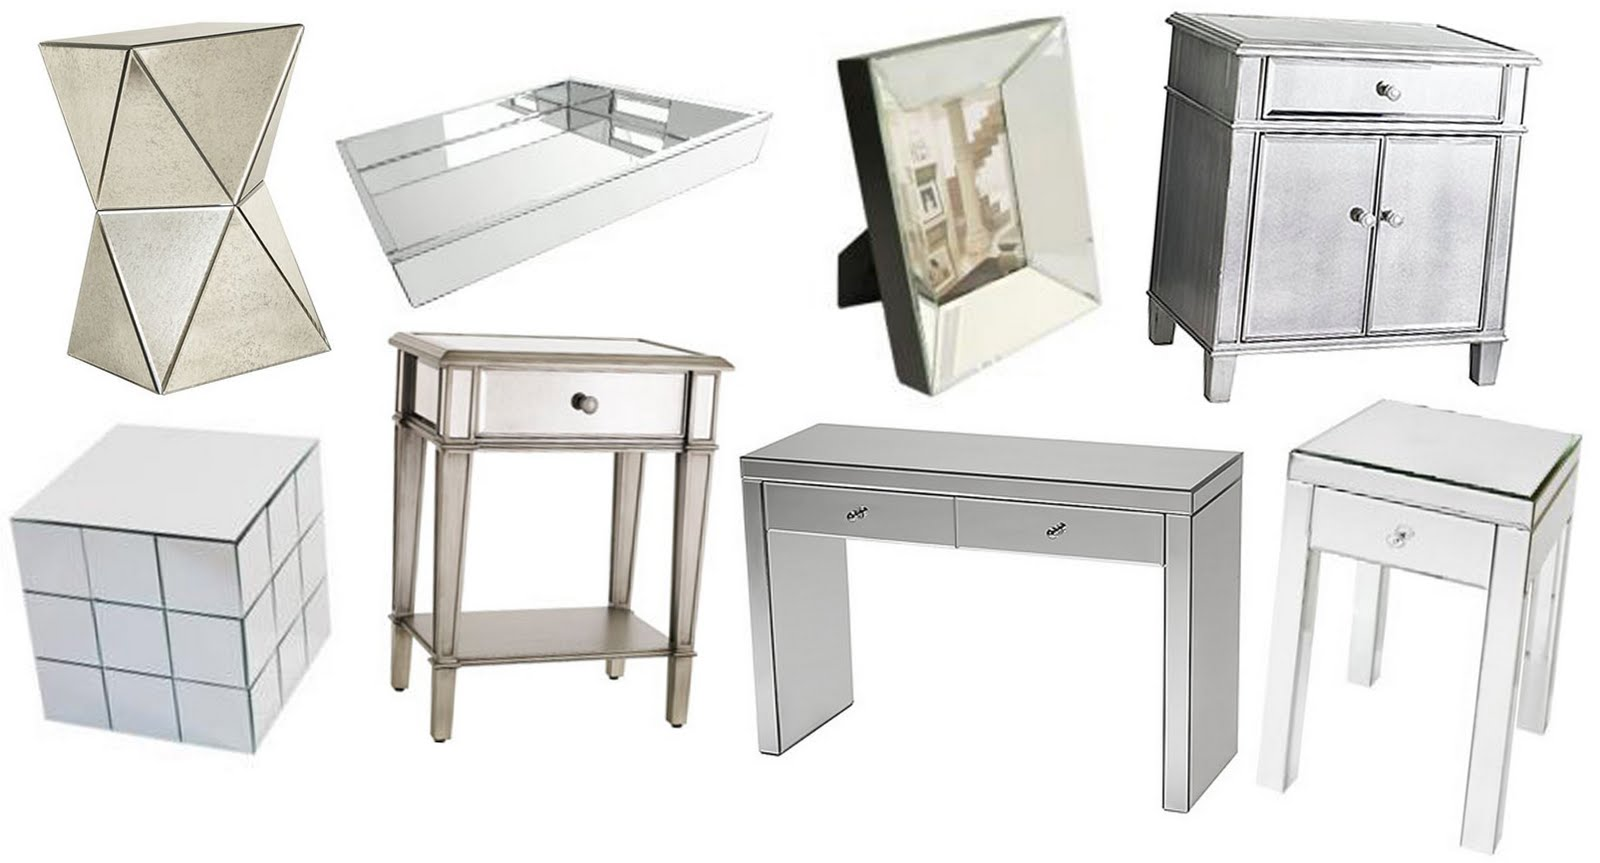 Wonderful hayworth vanity collections